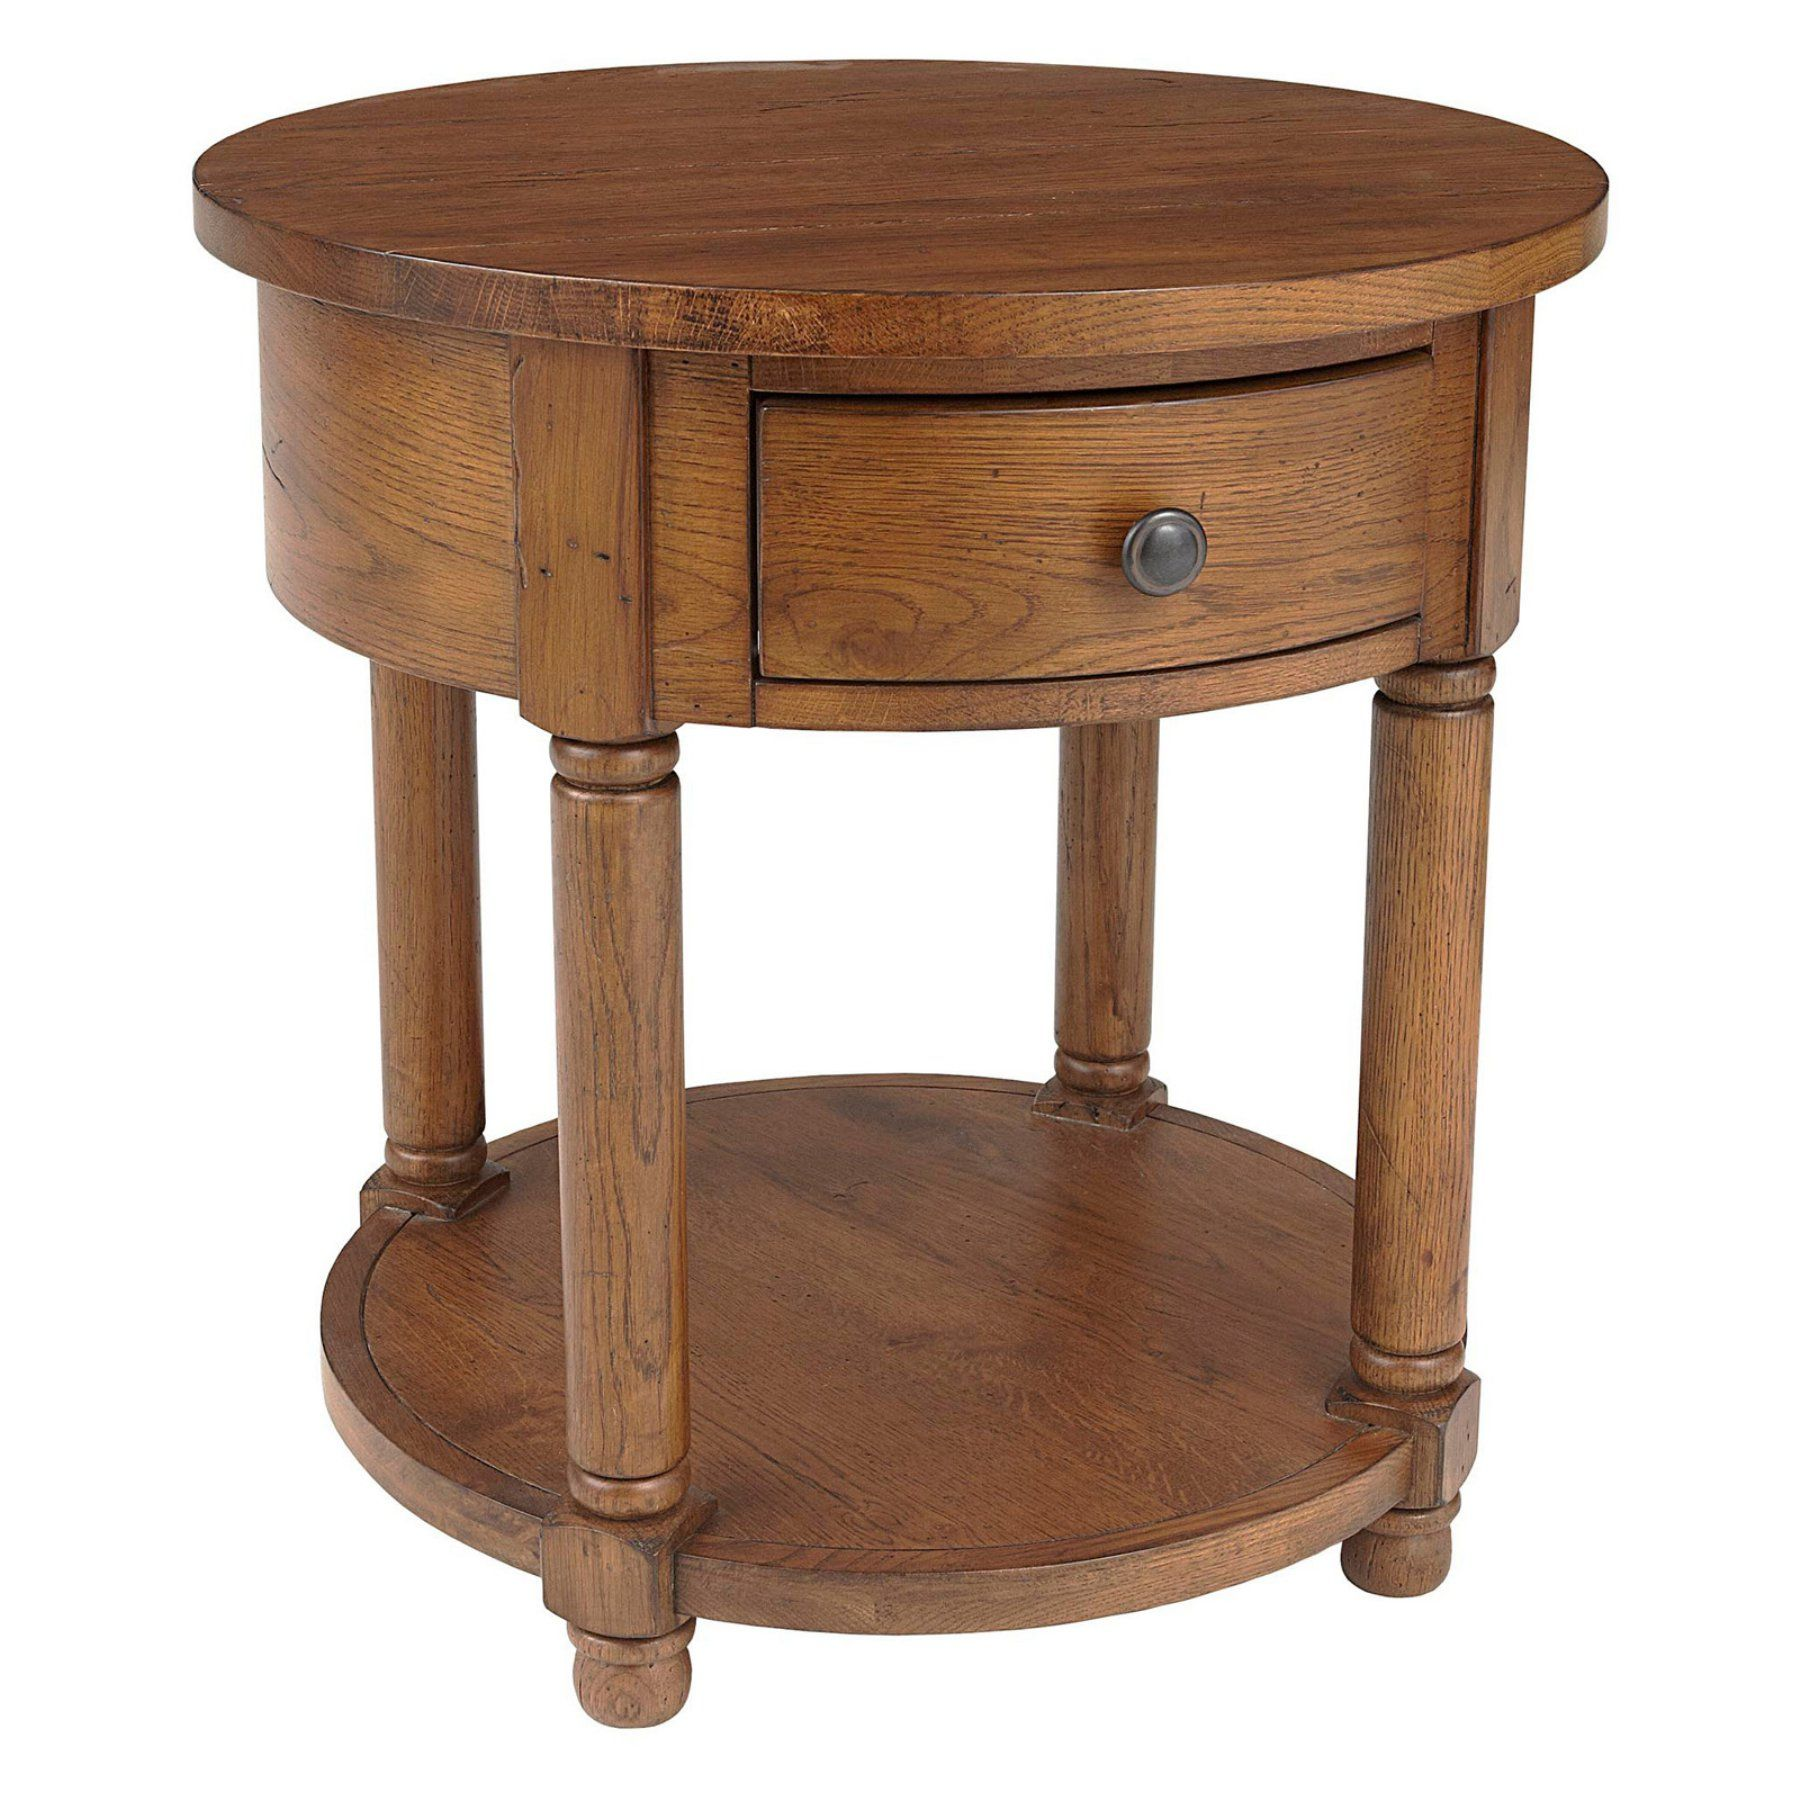 Broyhill Attic Heirlooms 1 Drawer Round End Table Broyhill Furniture Oak End Tables End Tables [ 1800 x 1800 Pixel ]